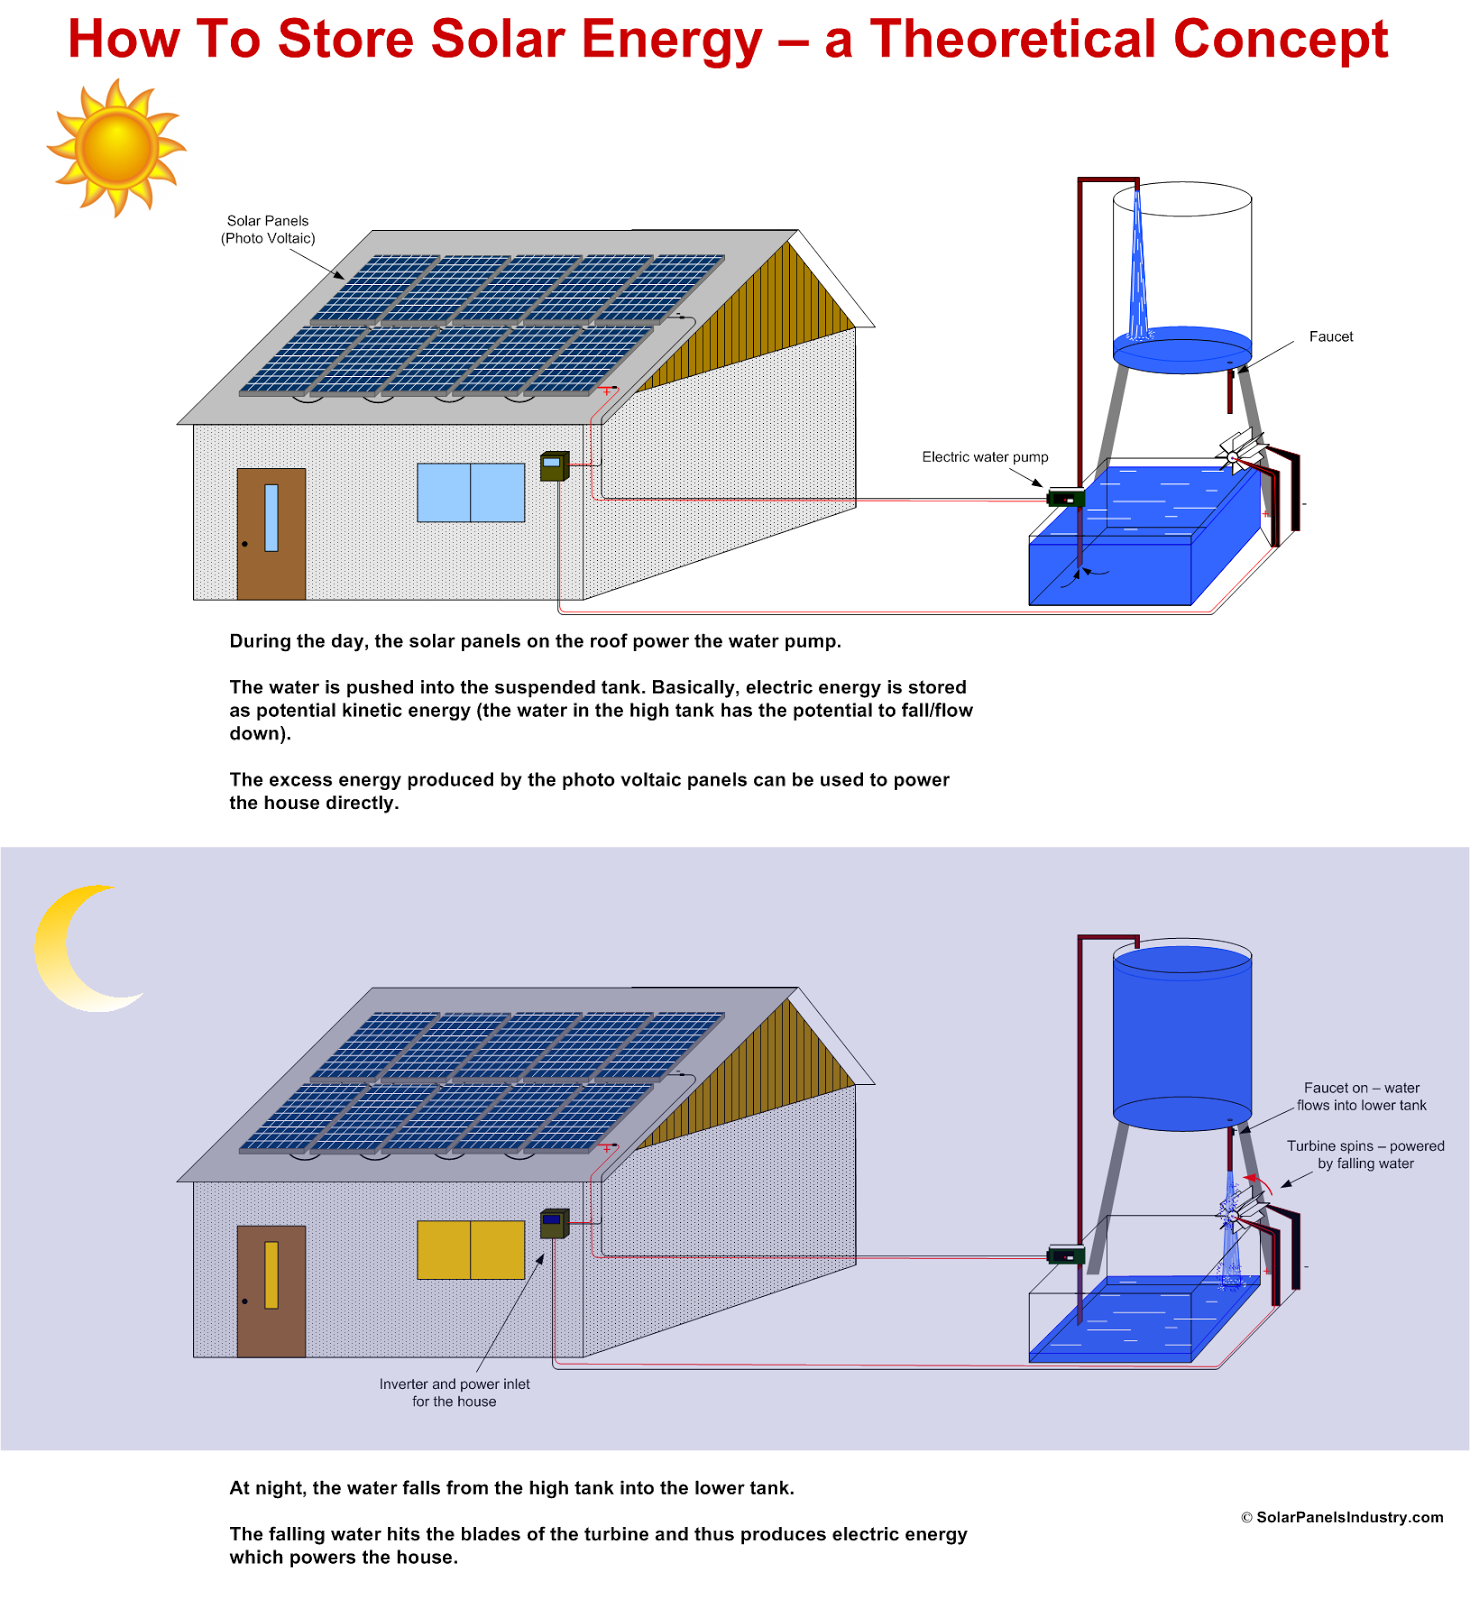 How To Store Solar Energy - A Theoretical Concept - Infographic